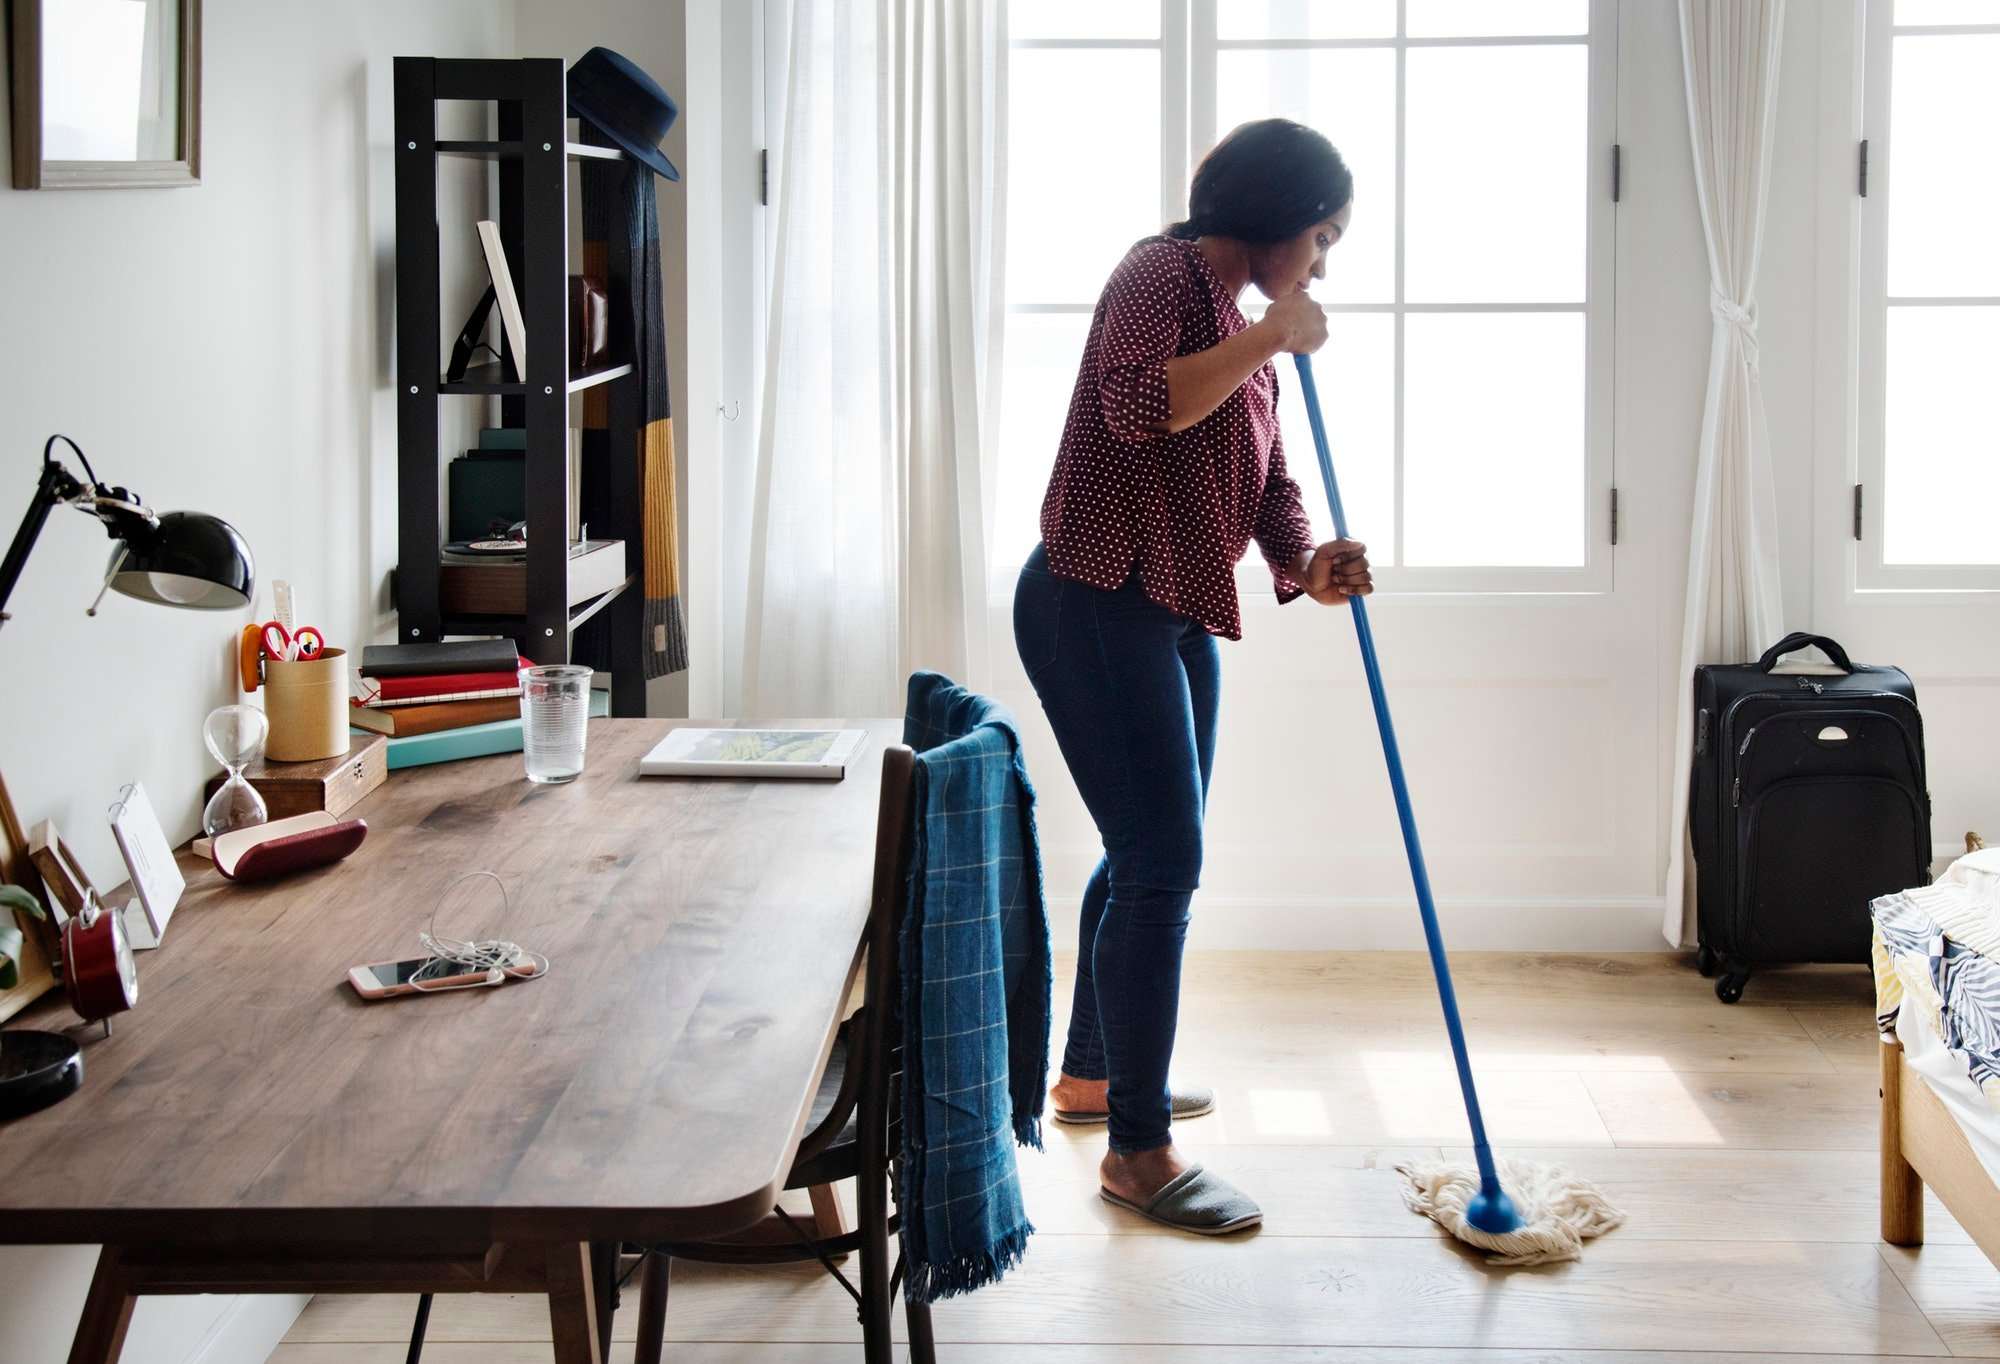 Black woman cleaning room